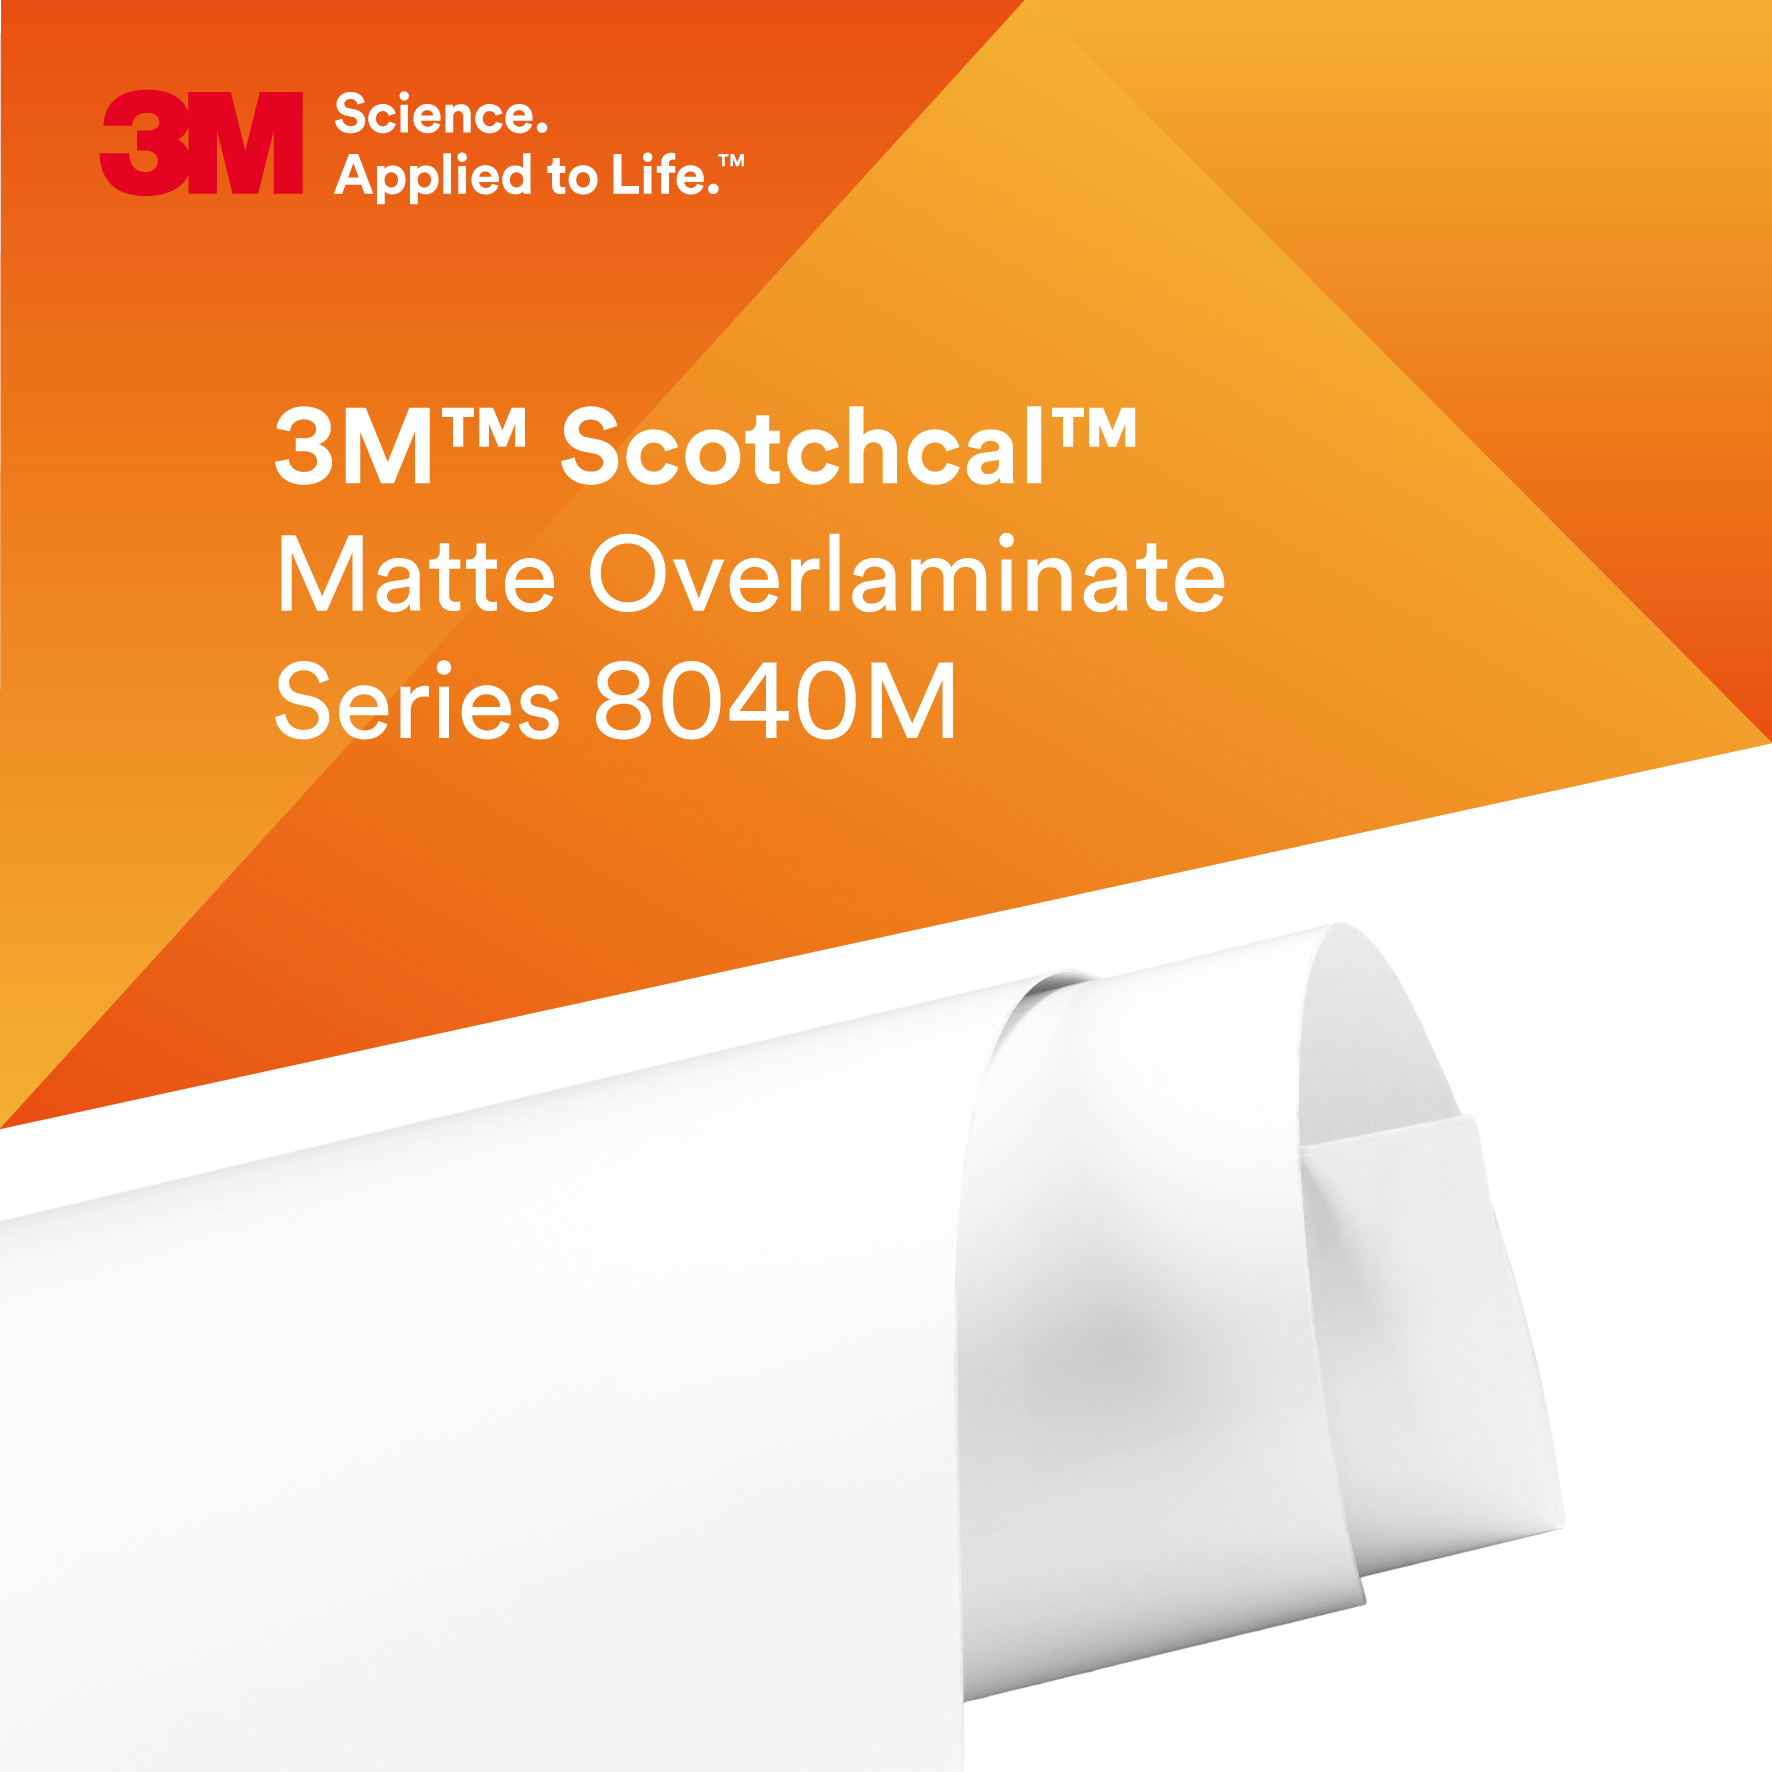 3M™ Scotchcal™ 8040M Matt